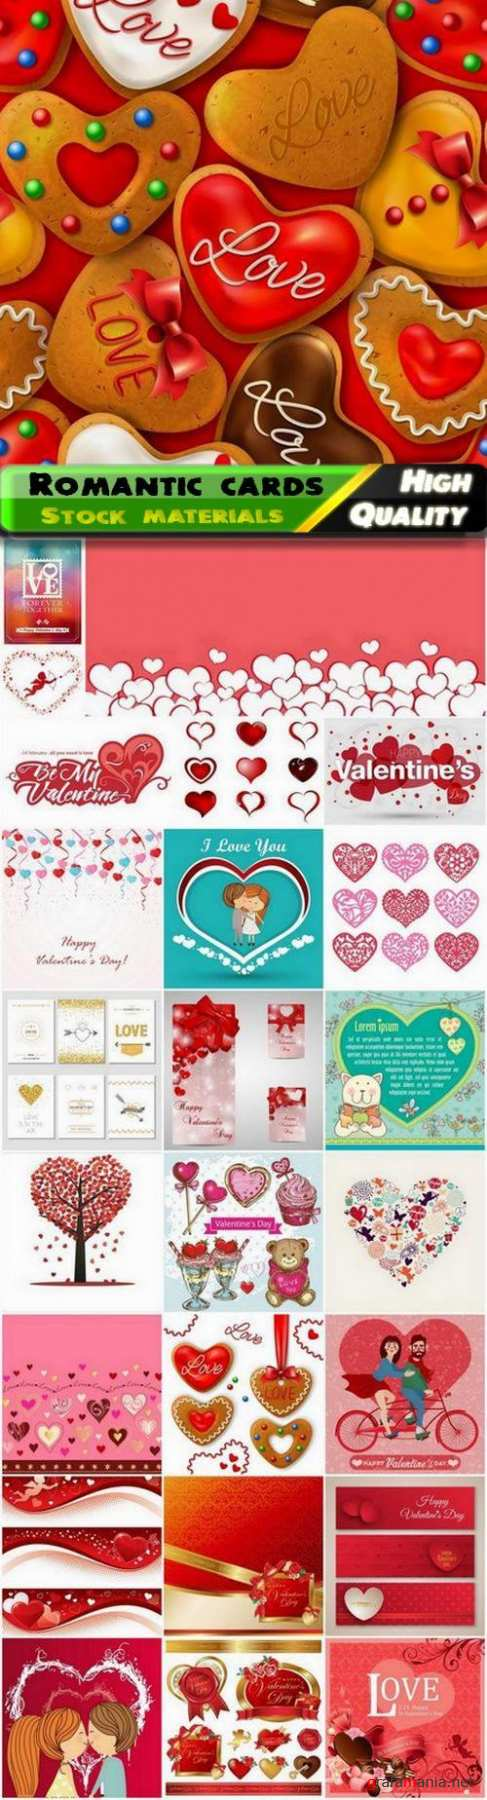 Romantic cards for Valentines Day with hearts and flowers 3 - 25 Eps